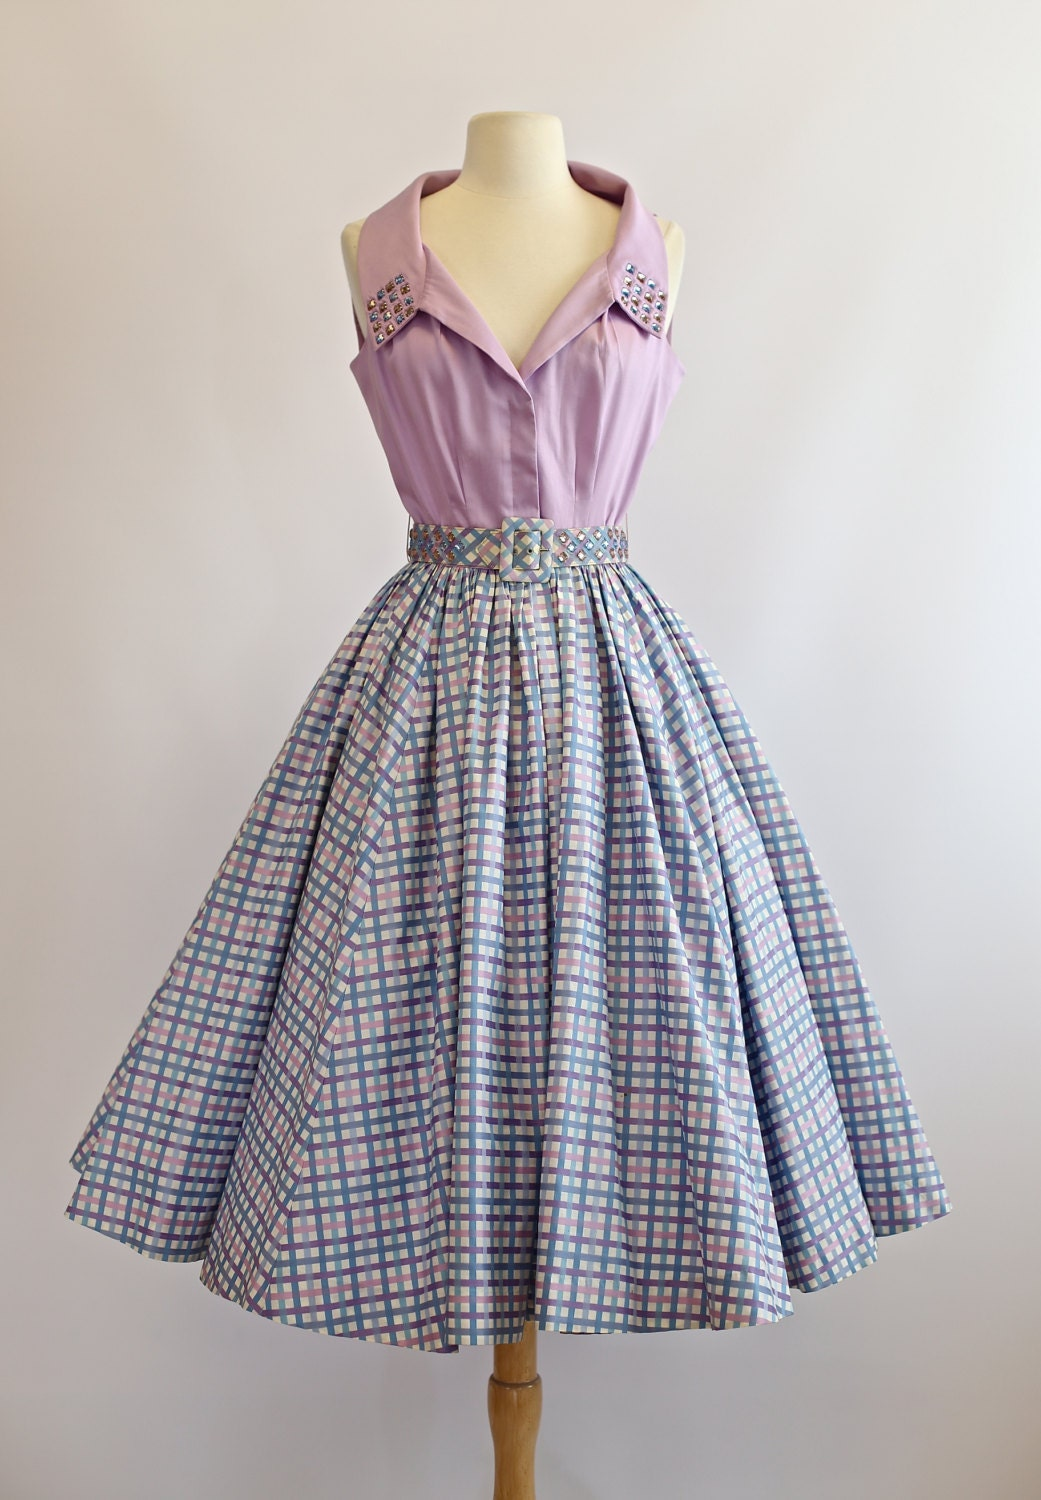 Vintage 1950s Cotton Dress 50s Sundress With Full Skirt